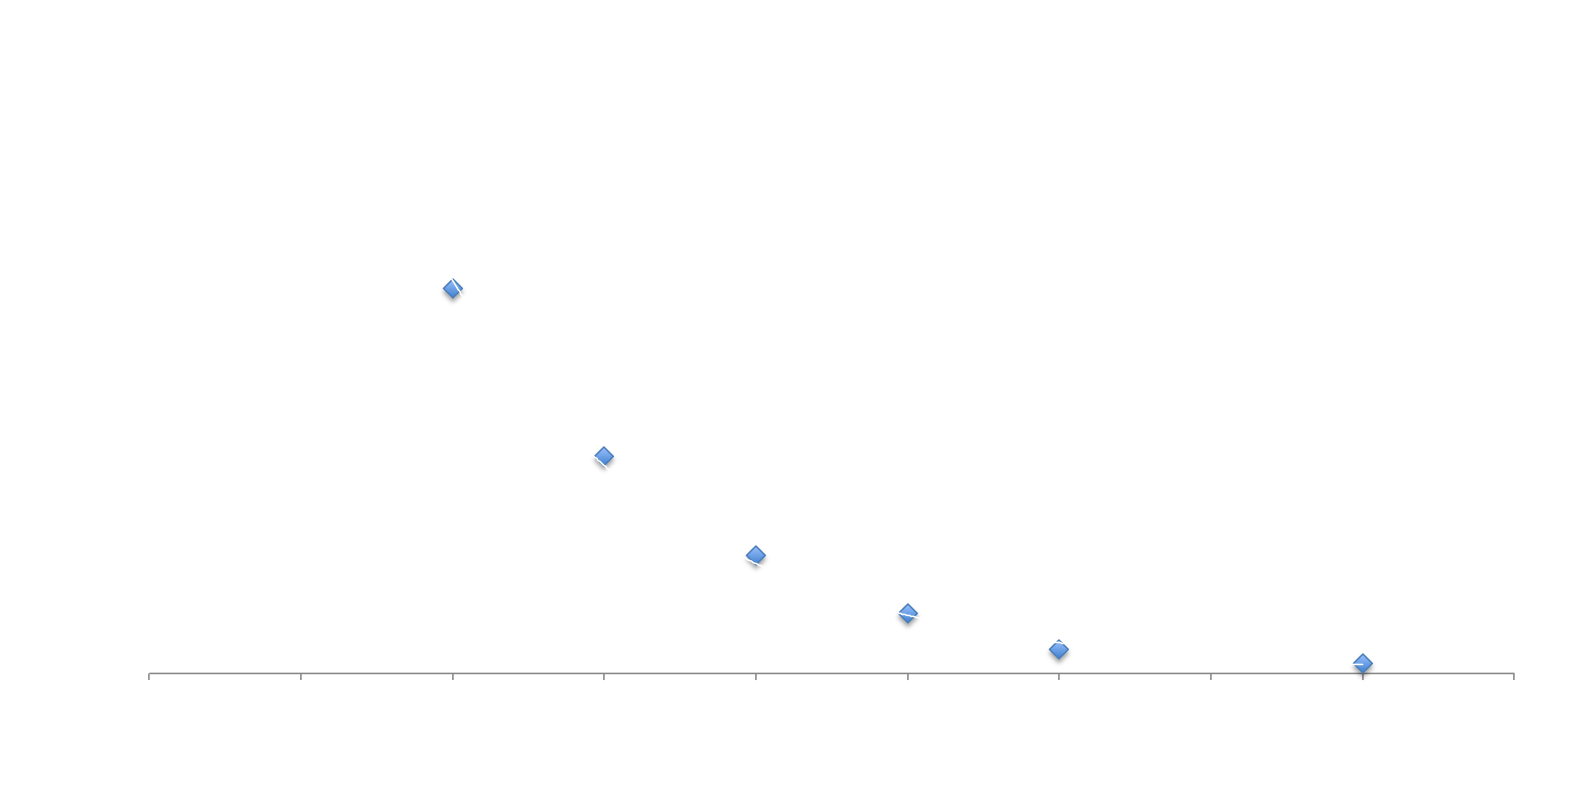 Price Elasticity of Demand of Video Games Chart